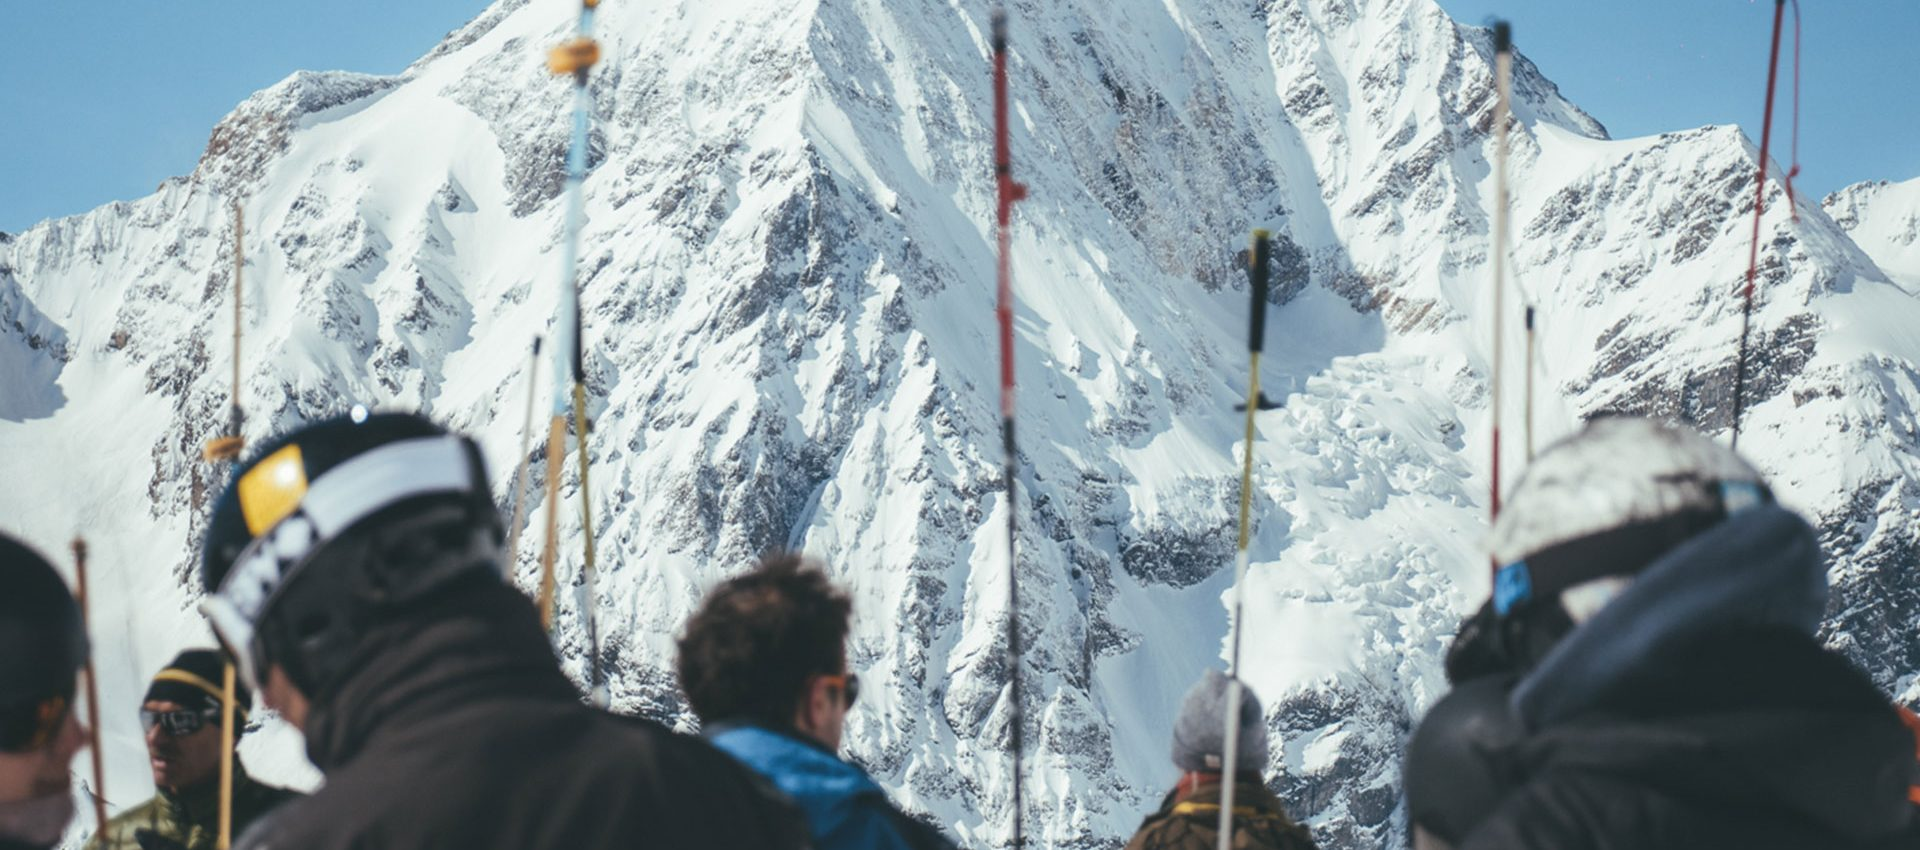 Safety first, training on how to use your avalanche gear is the foundation of freeriding.